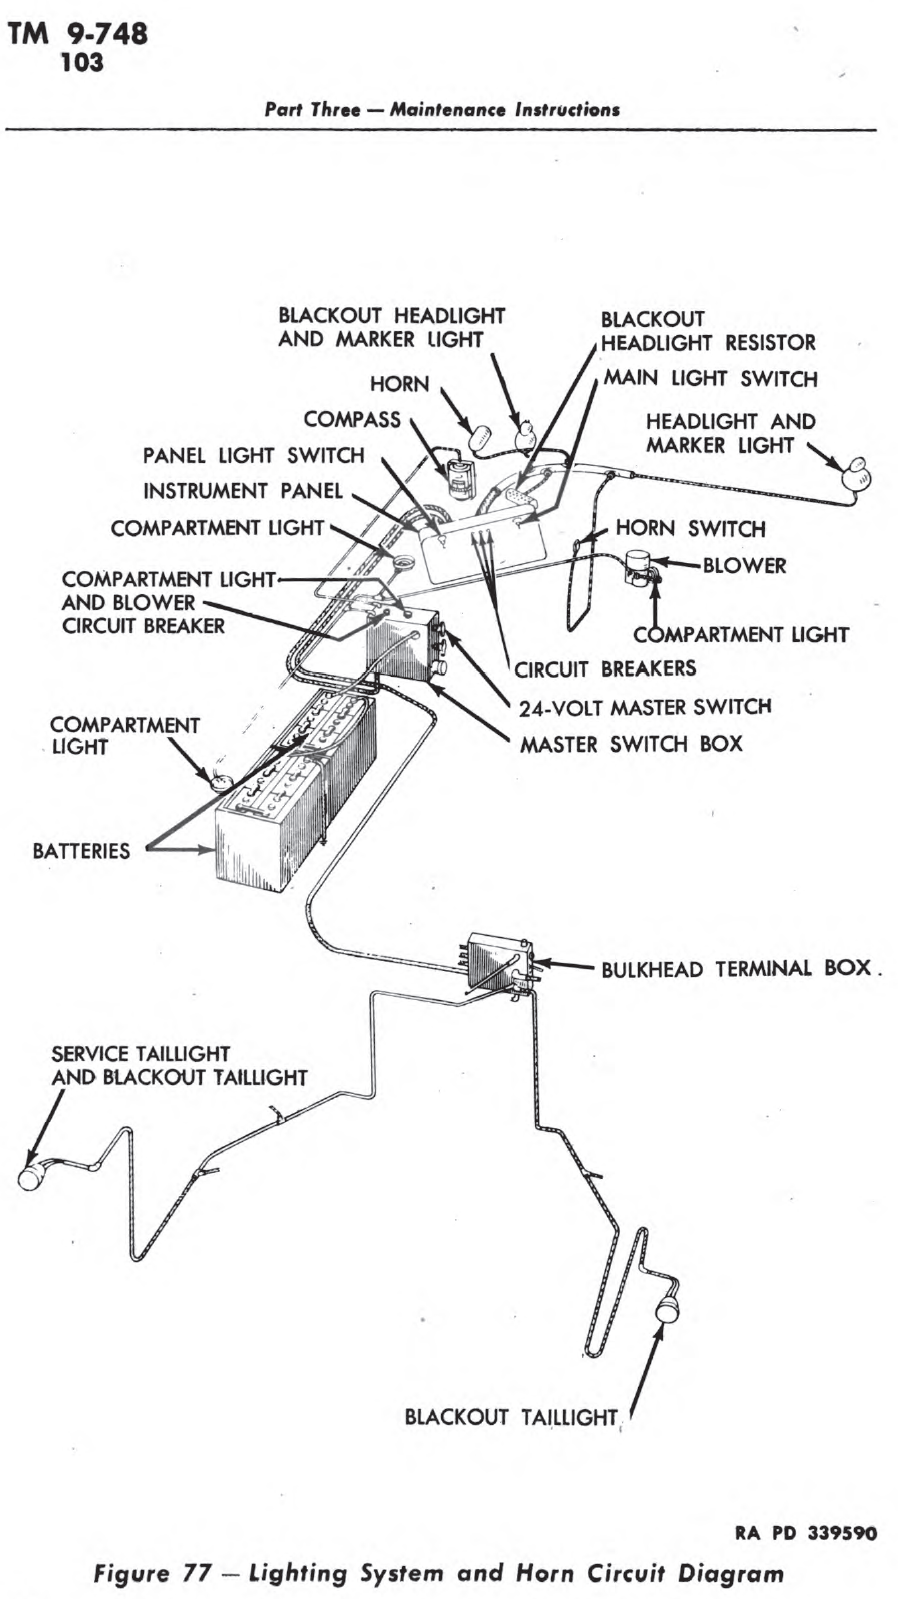 Interior Lighting The Sherman Tank Site 24 Volt Light Wiring Diagram M4a3 Hull